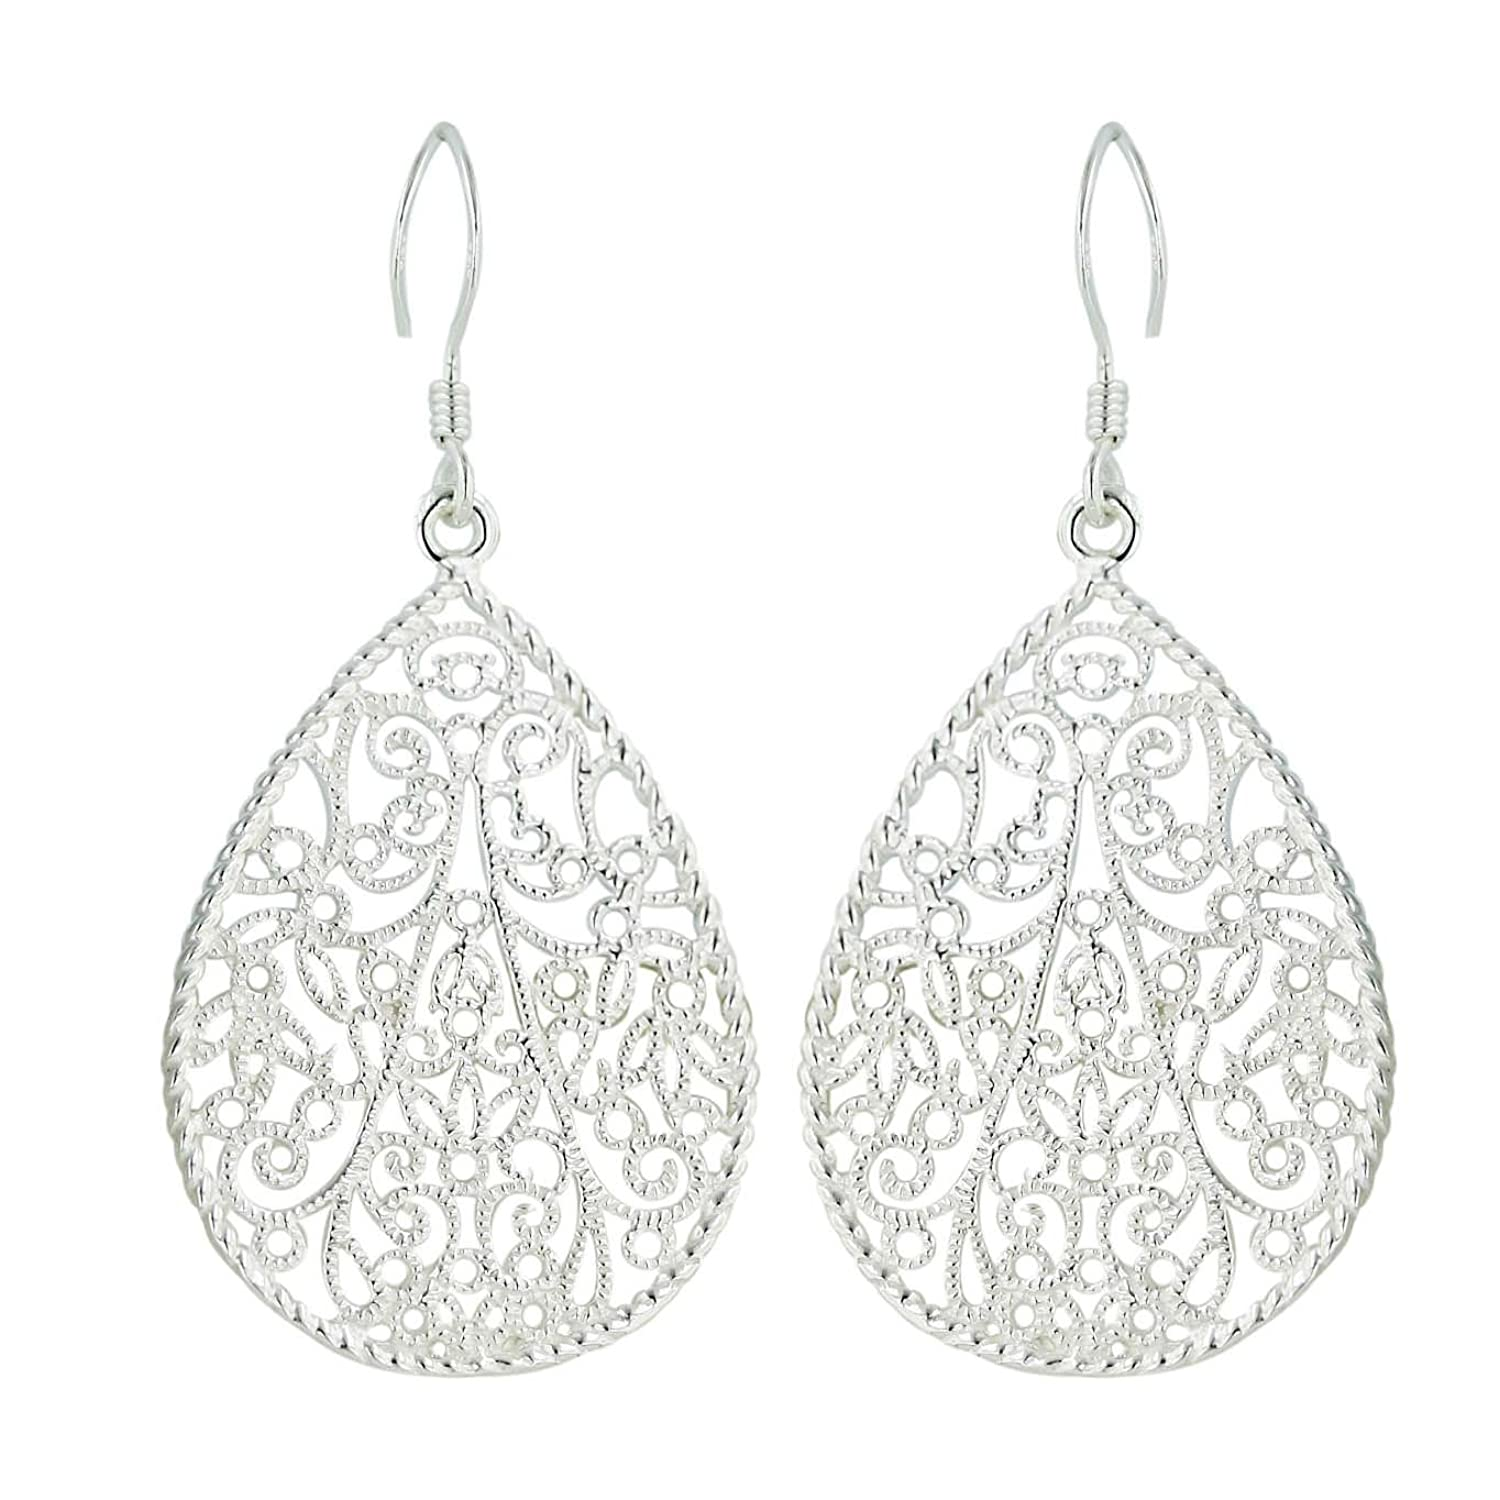 .925 Sterling Silver Oval Shaped Grainy finishing Filigree with Rope Frame Dangle Earrings Fish Hook